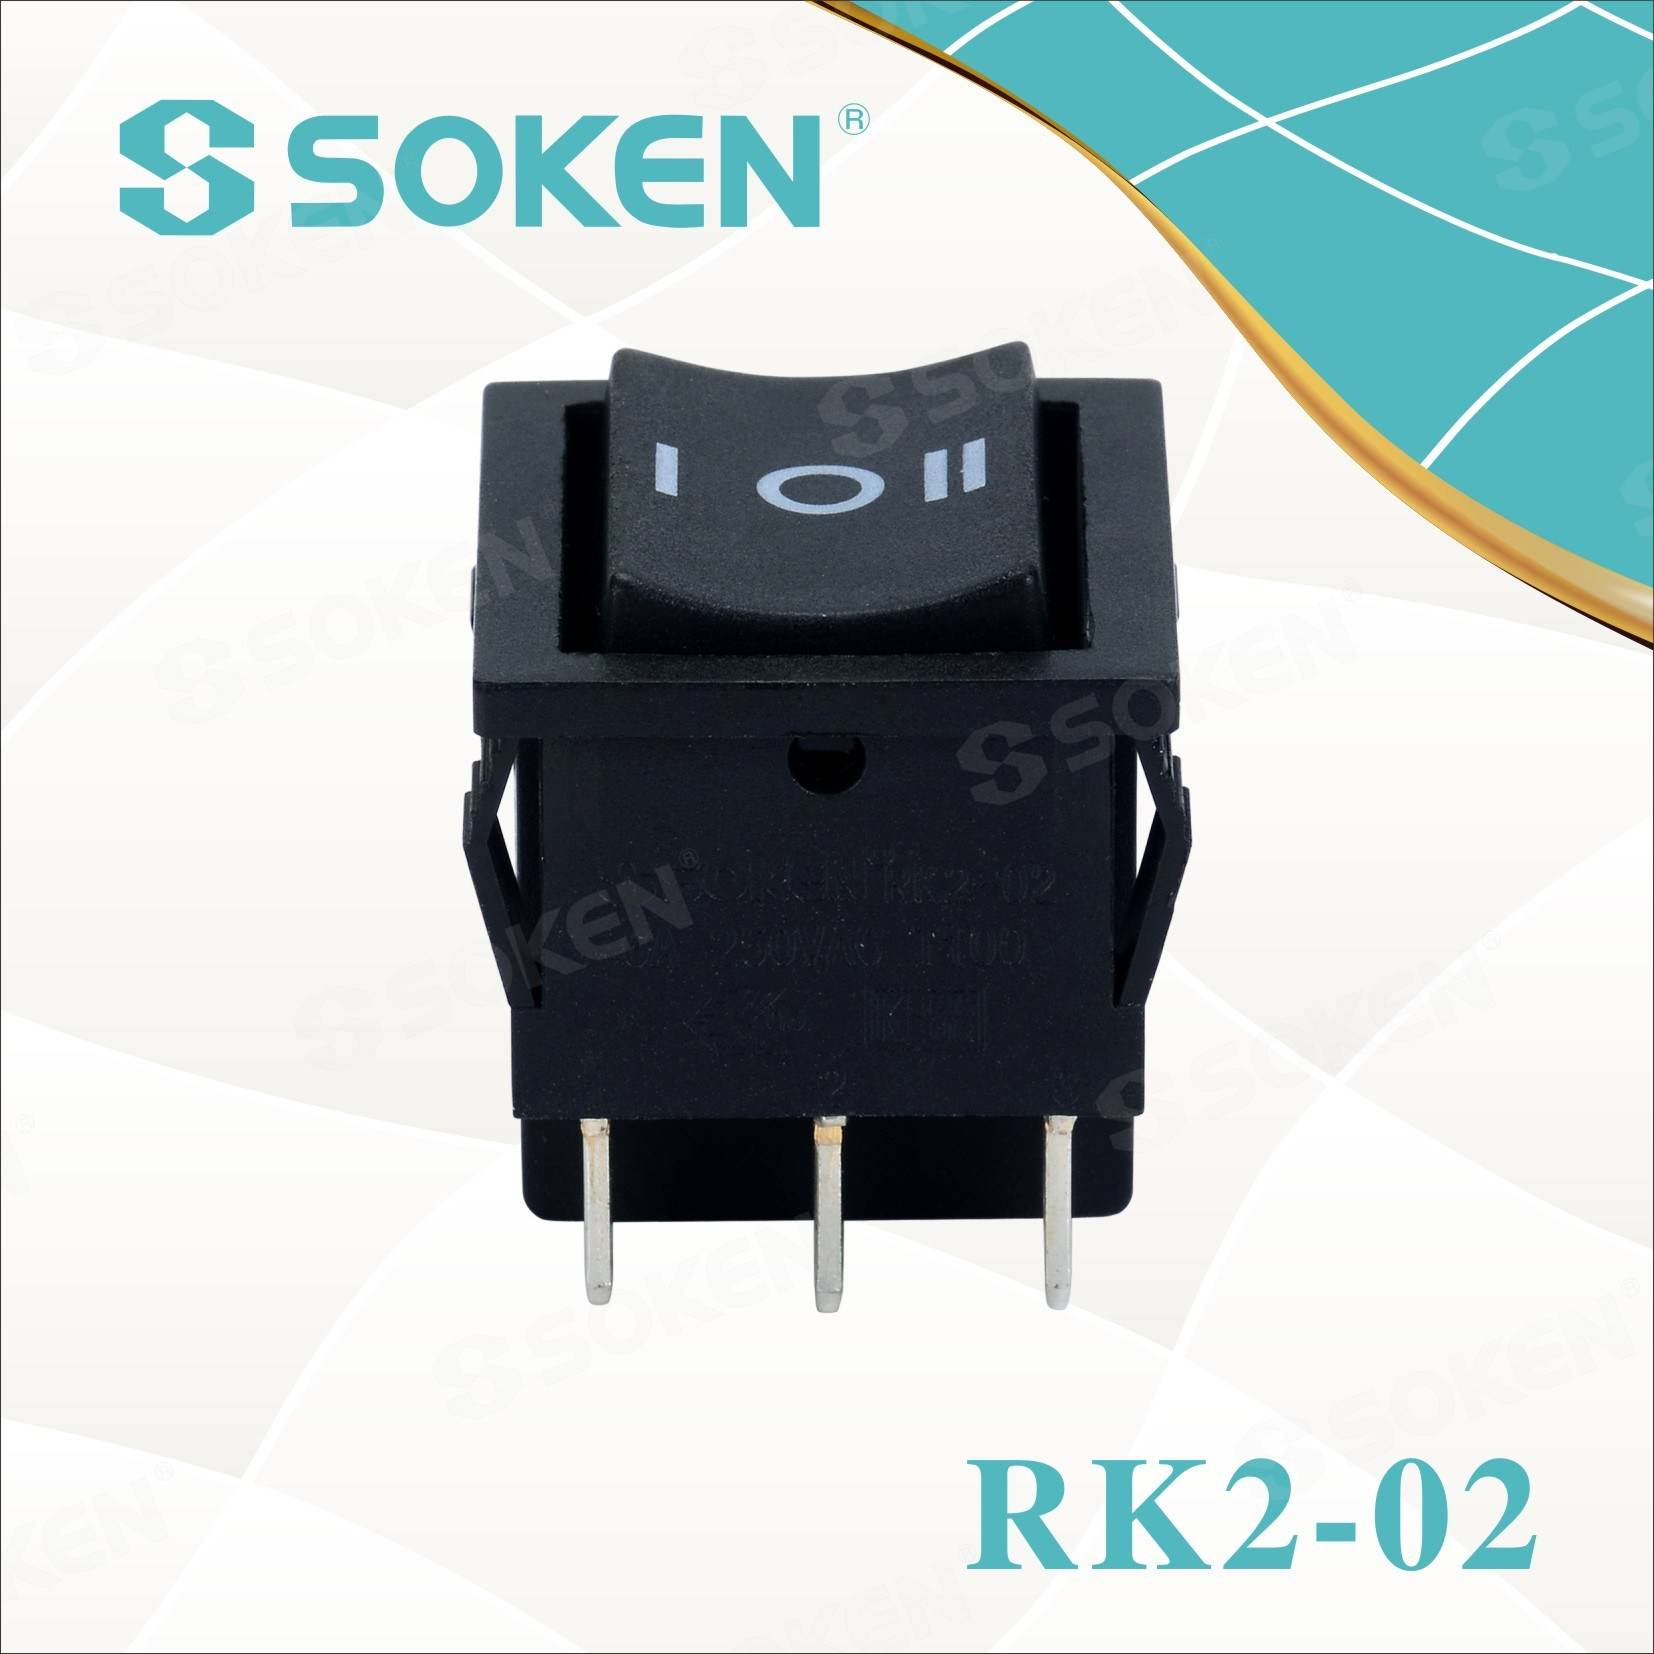 2019 Latest Design Blender Power Rotary On/off 3 Position Rotary Power Switches Sj-a1f02-3